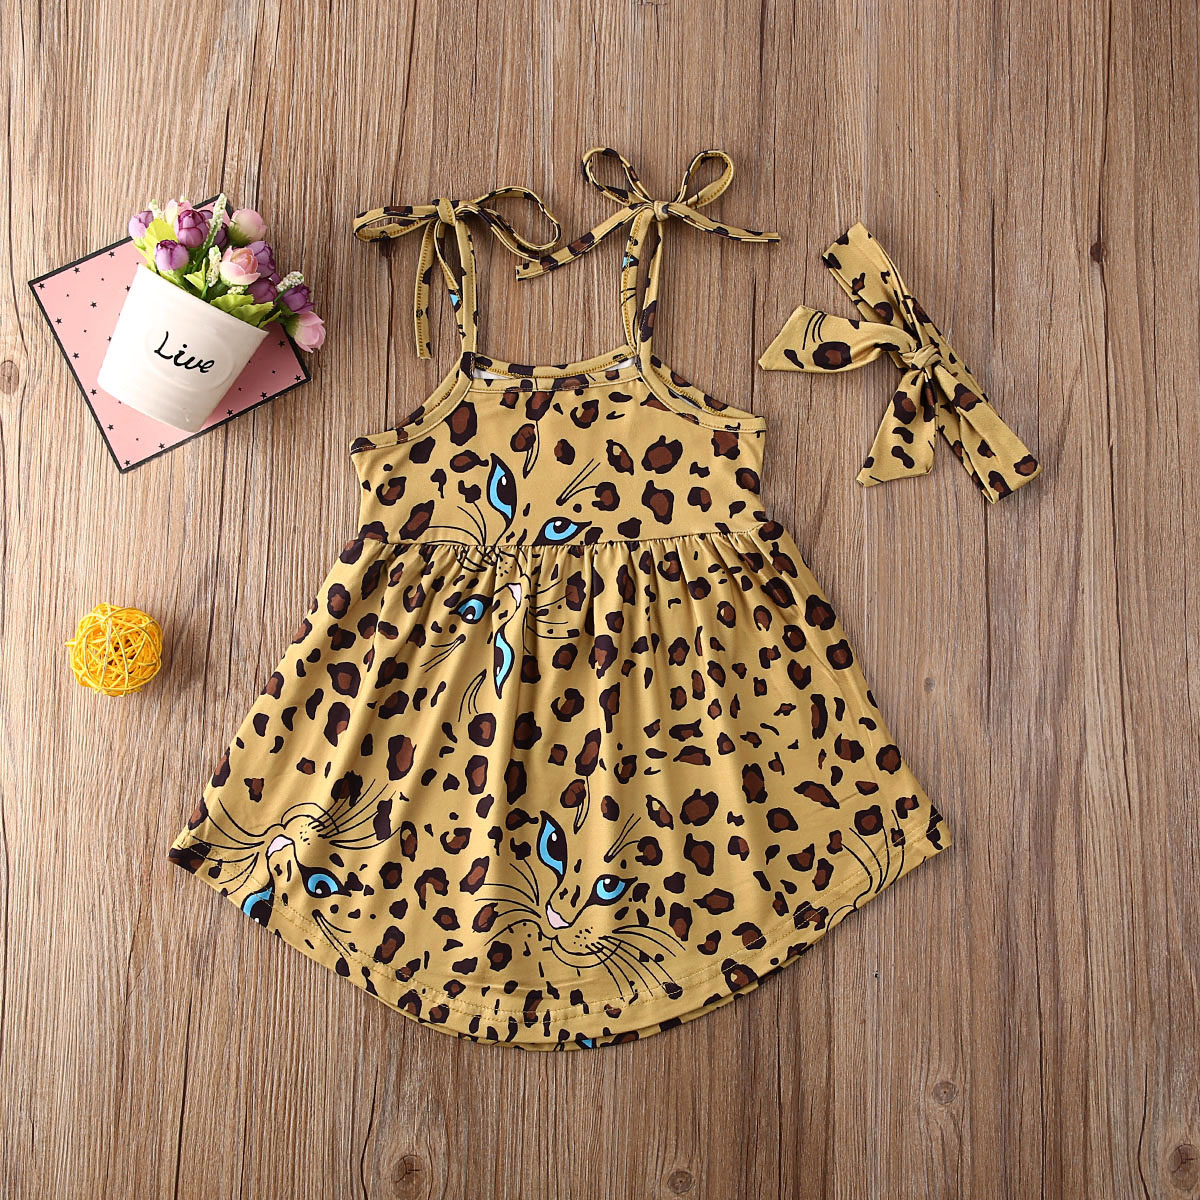 Pudcoco Newborn Baby Girl Clothes Leopard Print Sleeveless Strap Dress Headband 2Pcs Outfits Cotton Sunsuit Casual Clothes